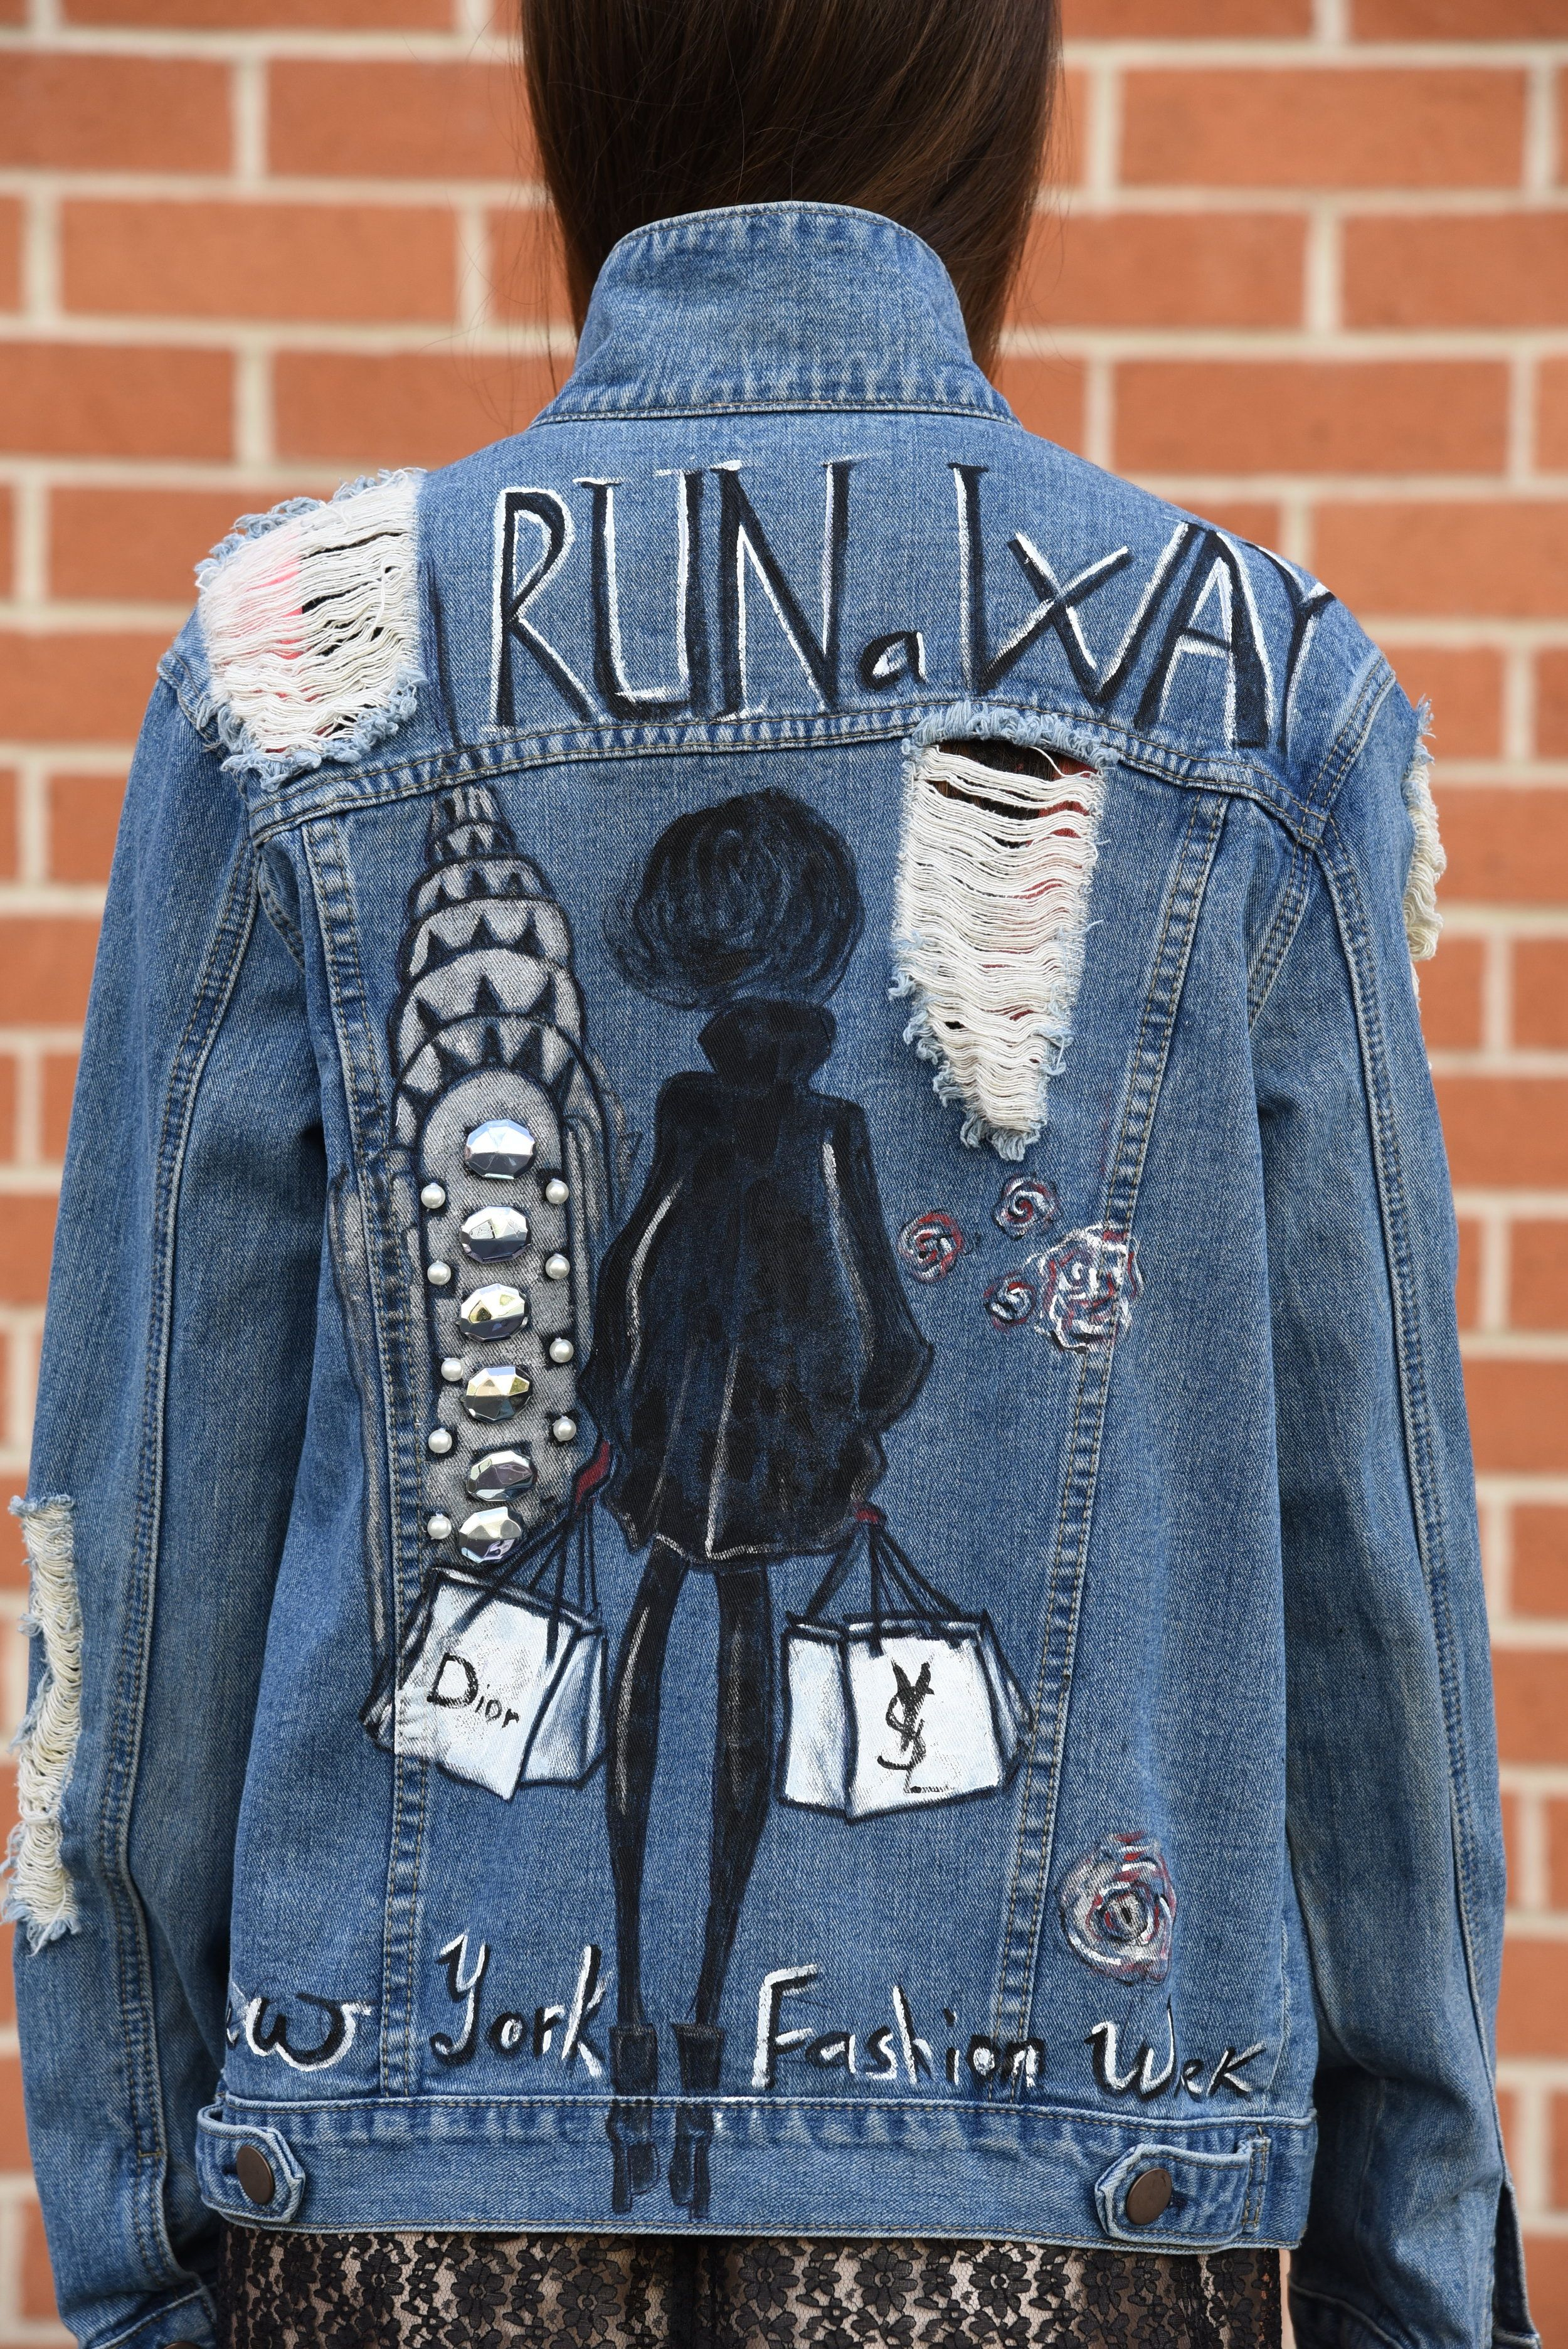 Hand Painted Vintage Denim Jacket Inspired By New York And Megan